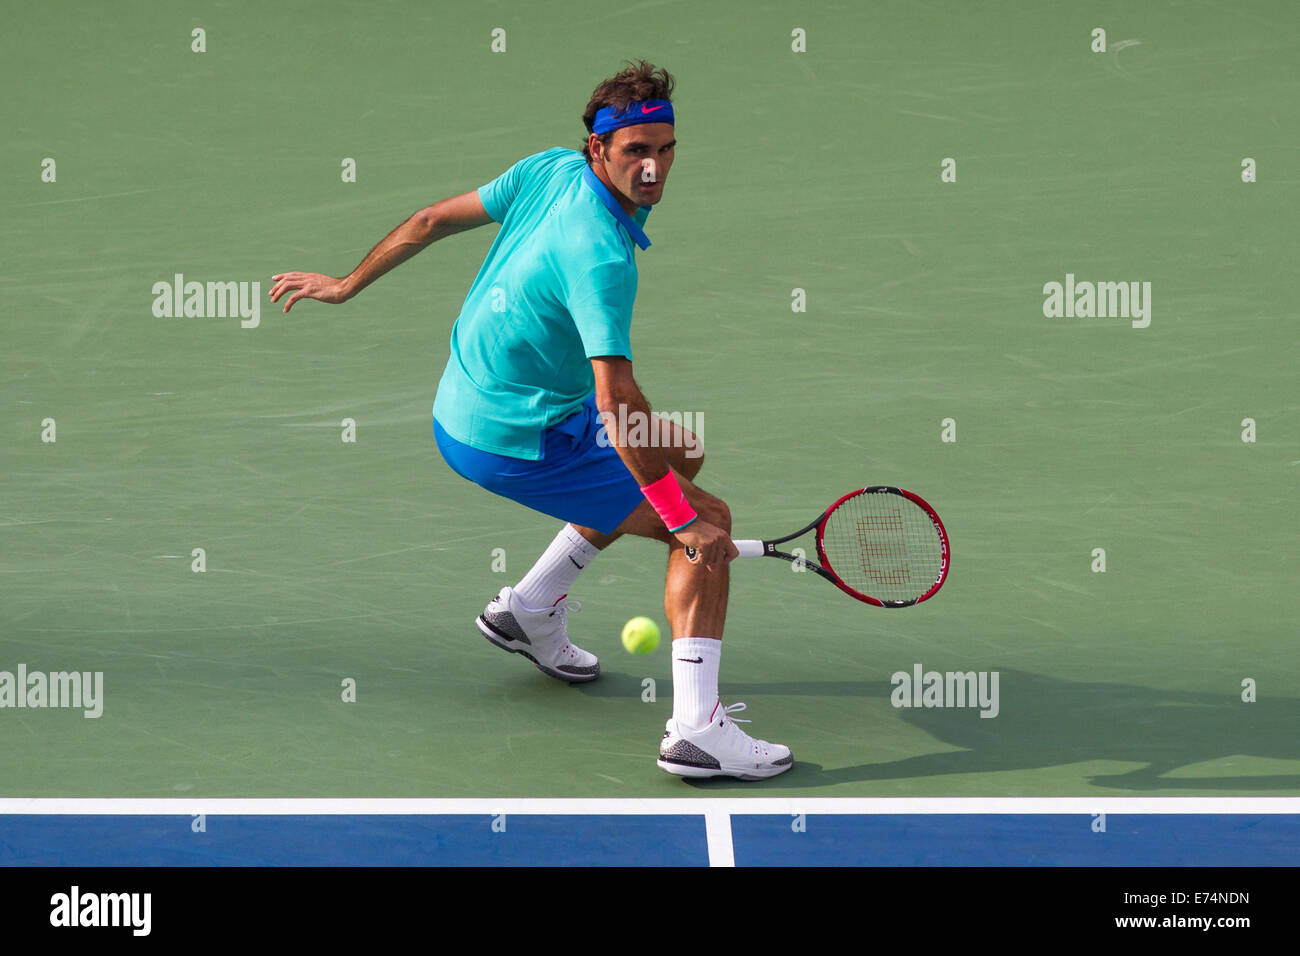 New York, US. 6th Sep, 2014. Roger Federer (SUI) was defeated by Marin Cilic (CRO) in the Men's Semi-Final. - Stock Image